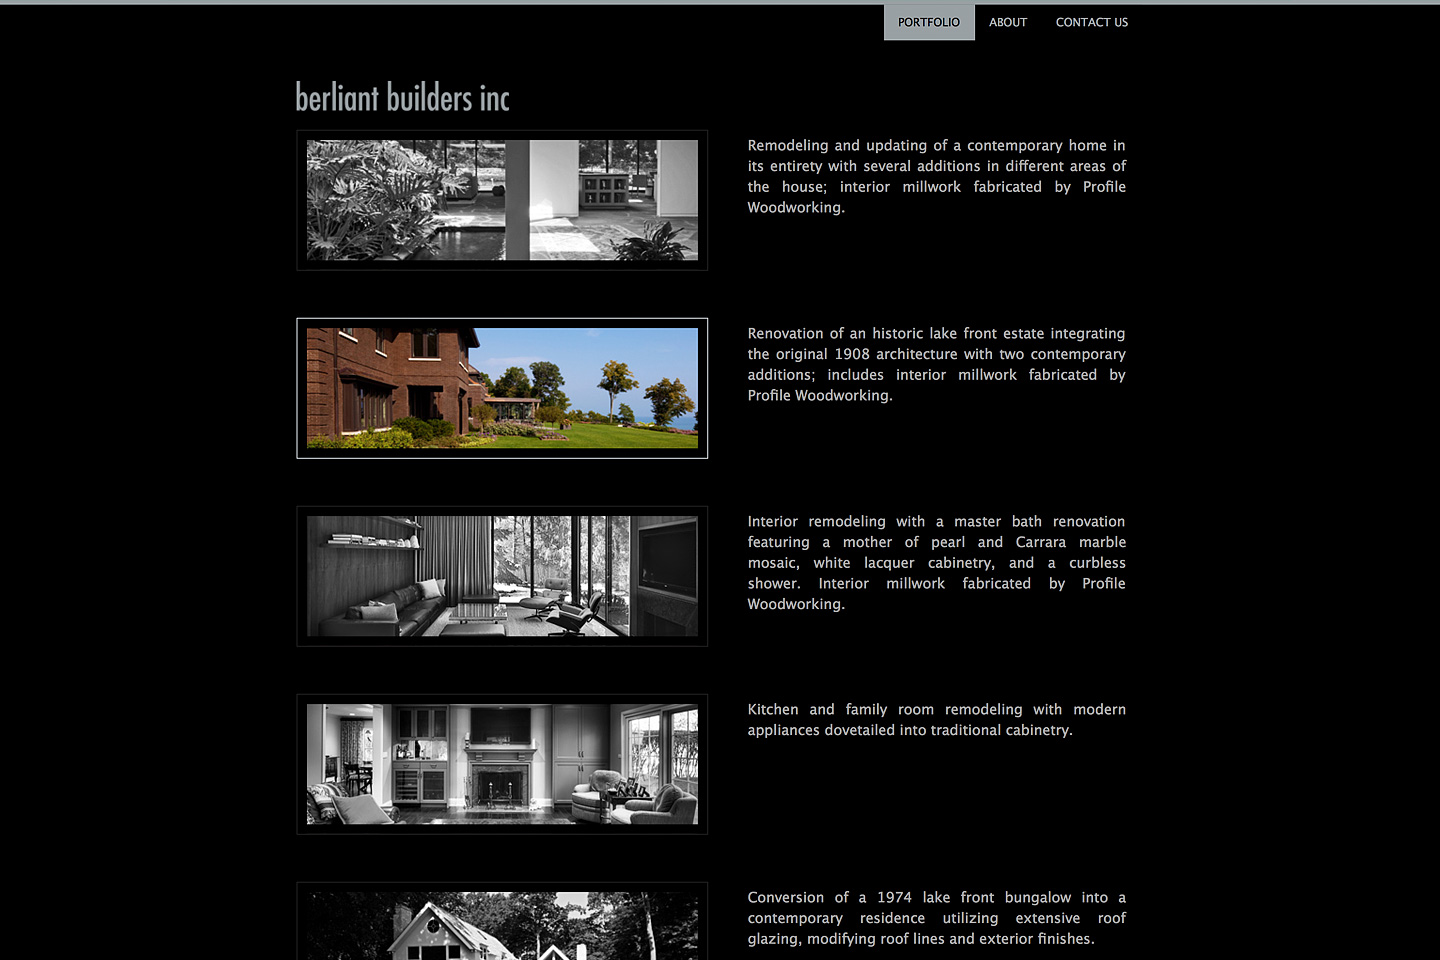 a screen capture of the portfolio page, featuring selected projects completed by berliant builders